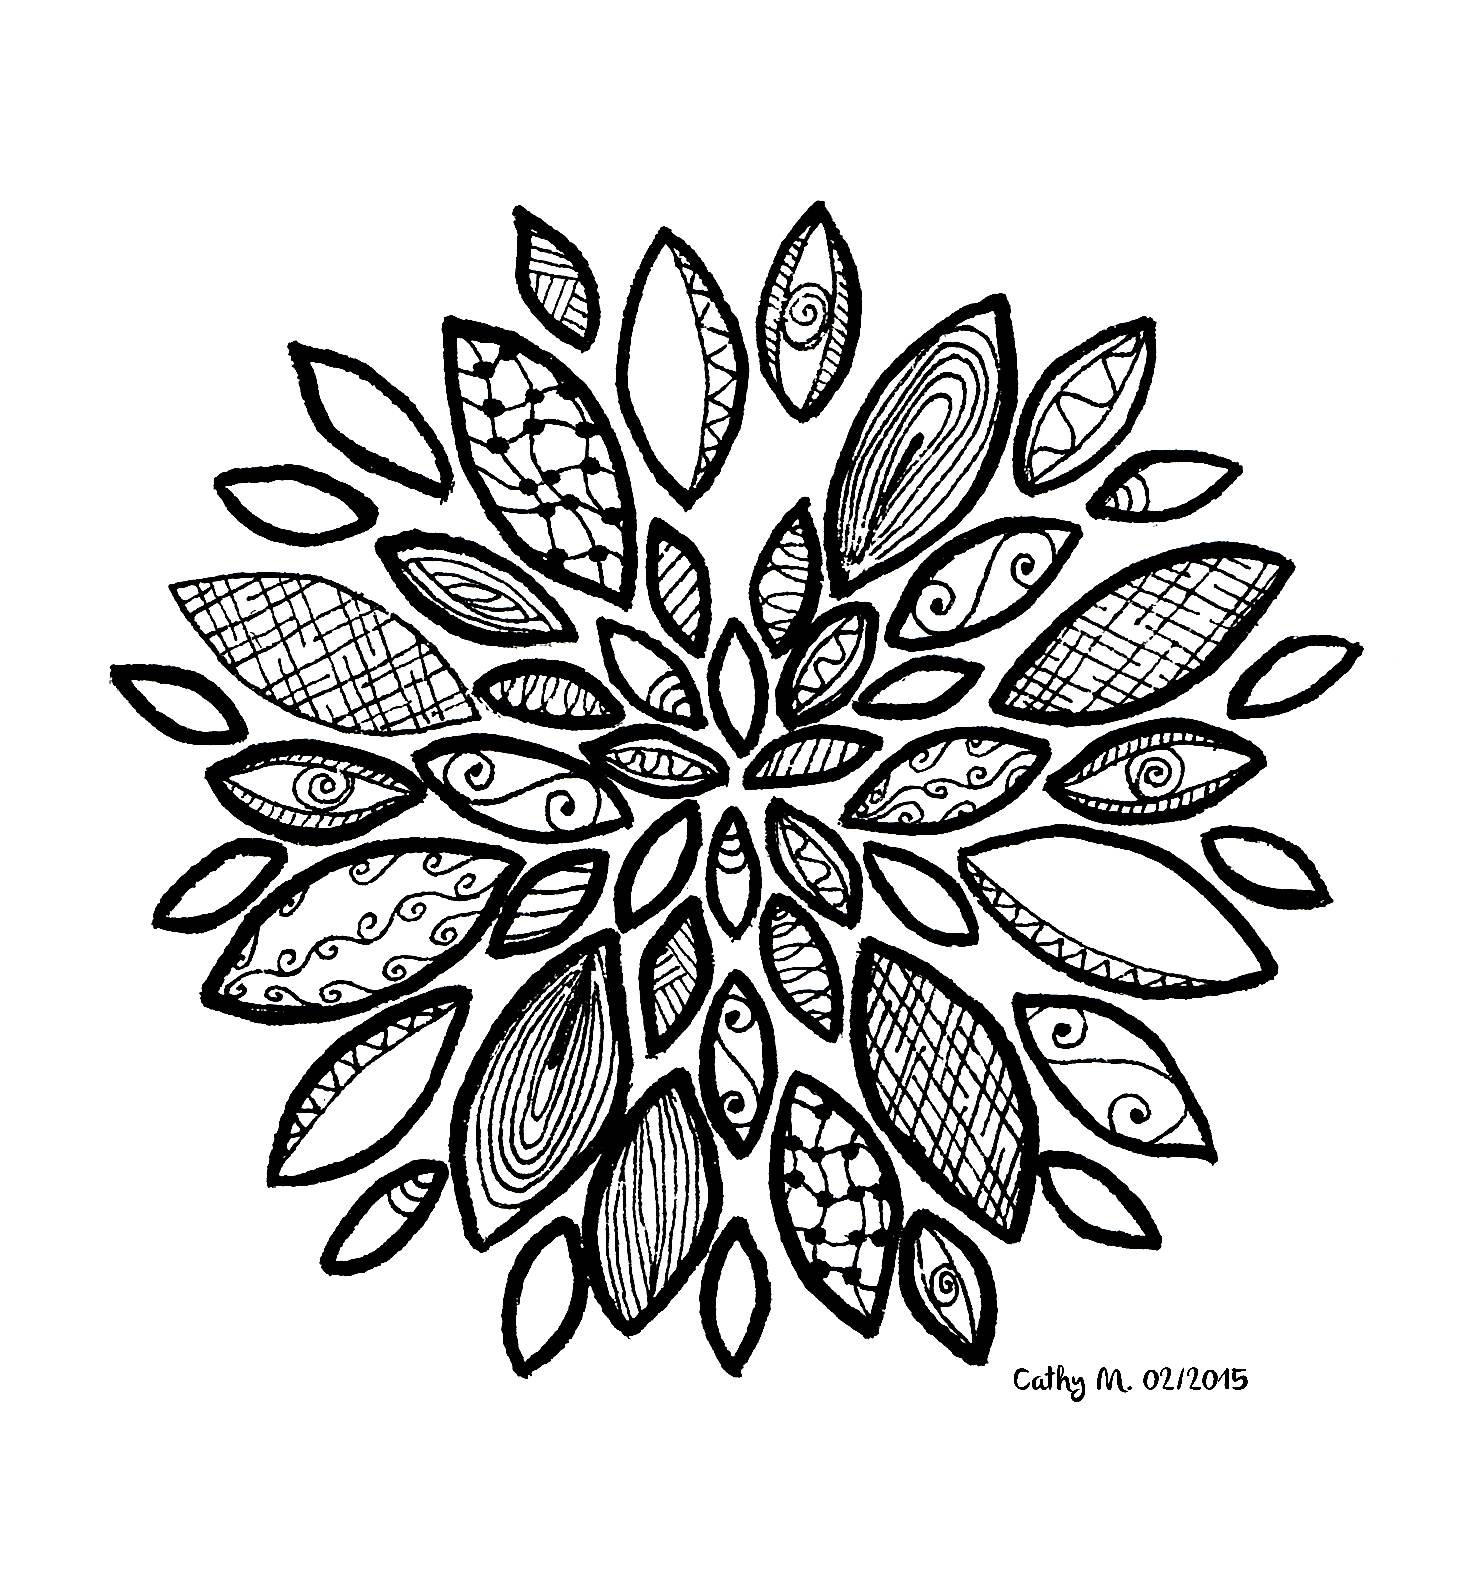 Disegni da colorare per adulti : Zentangle - 18